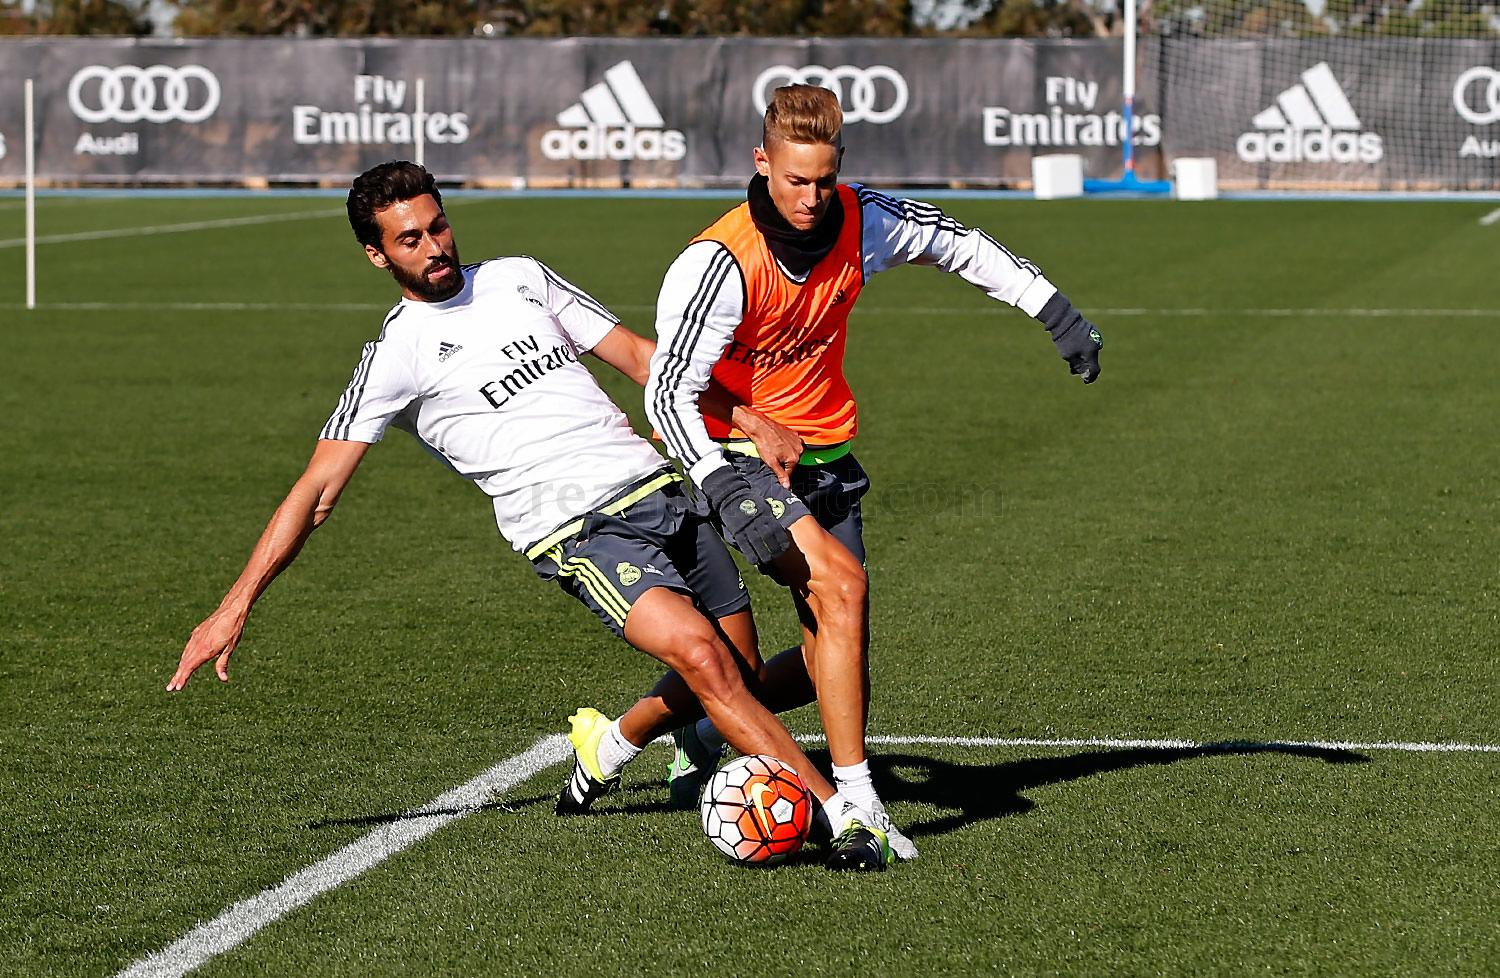 Real Madrid - Entrenamiento del Real Madrid - 20-07-2015